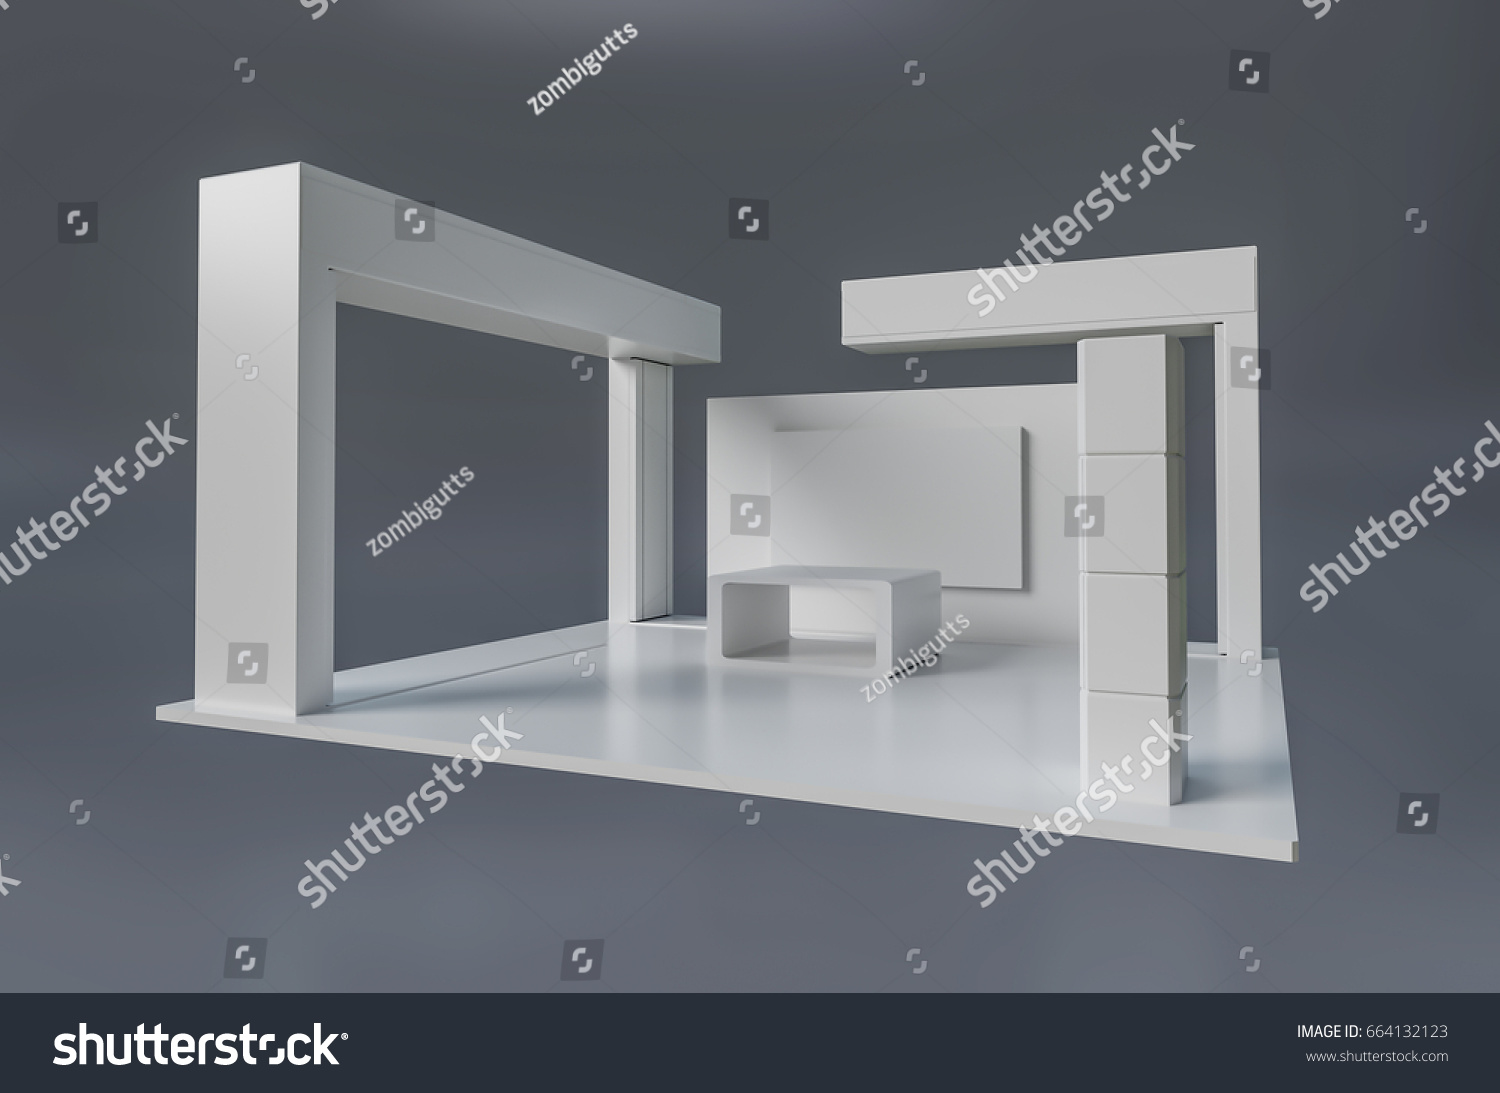 Exhibition Booth Stand : Brand exhibition booth stand template used stock illustration